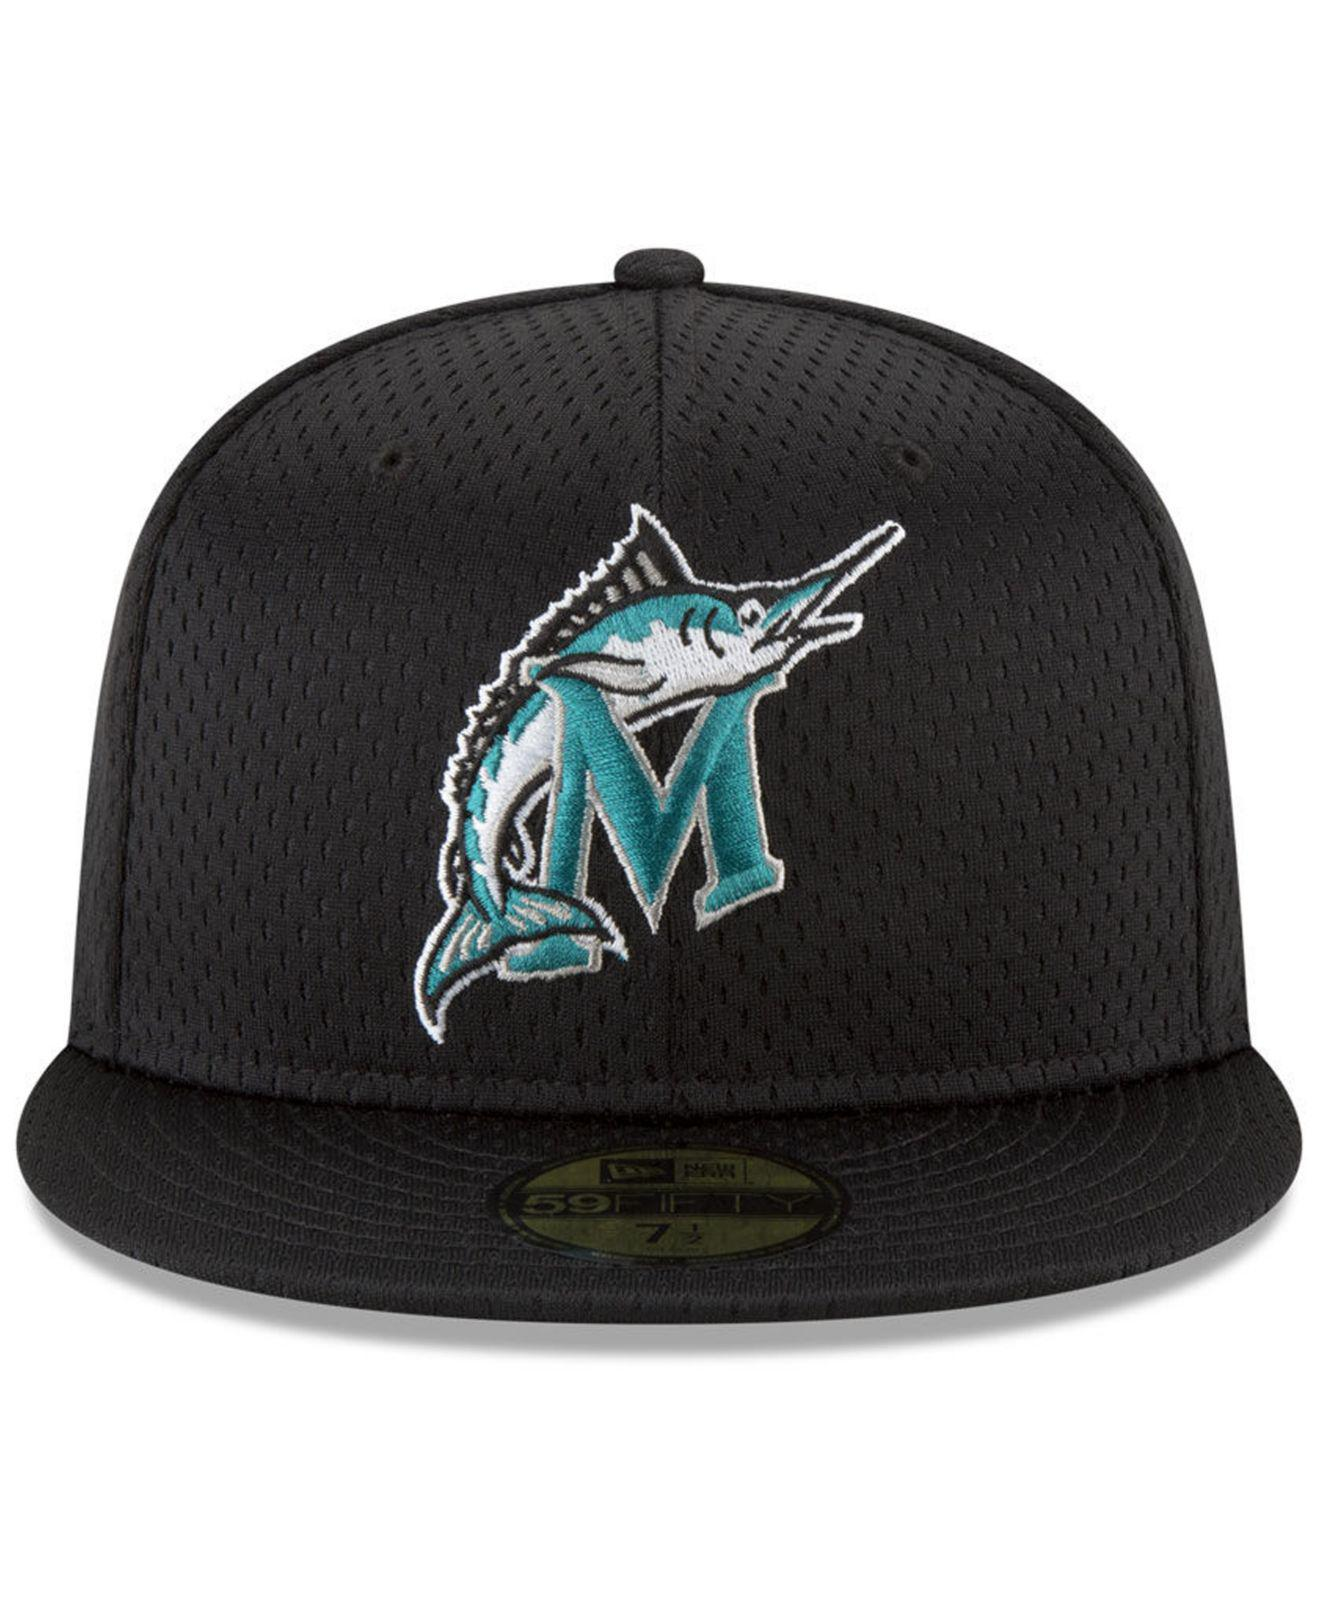 new product 5780b 3ca25 ... wholesale lyst ktz florida marlins retro classic batting practice 59fifty  fitted cap in black for men